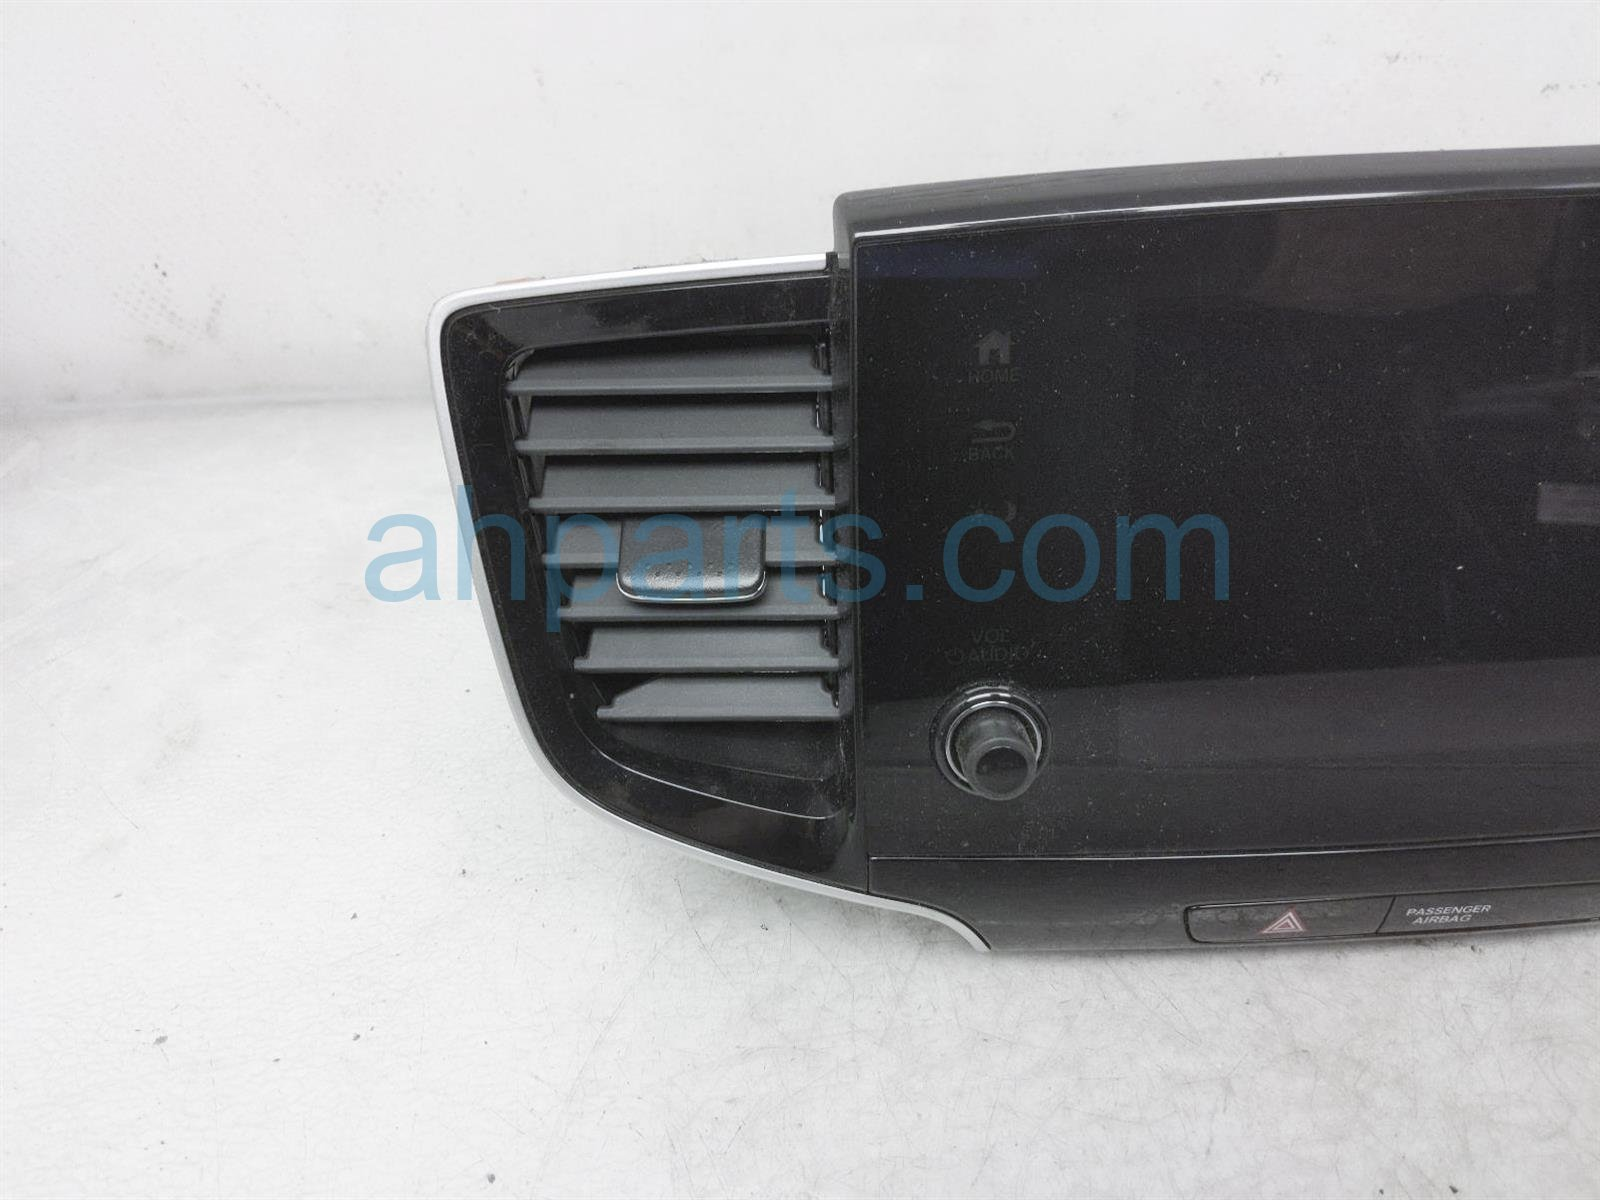 2019 Honda Pilot Radio Nav Display Unit 39710 TG7 A01 Replacement